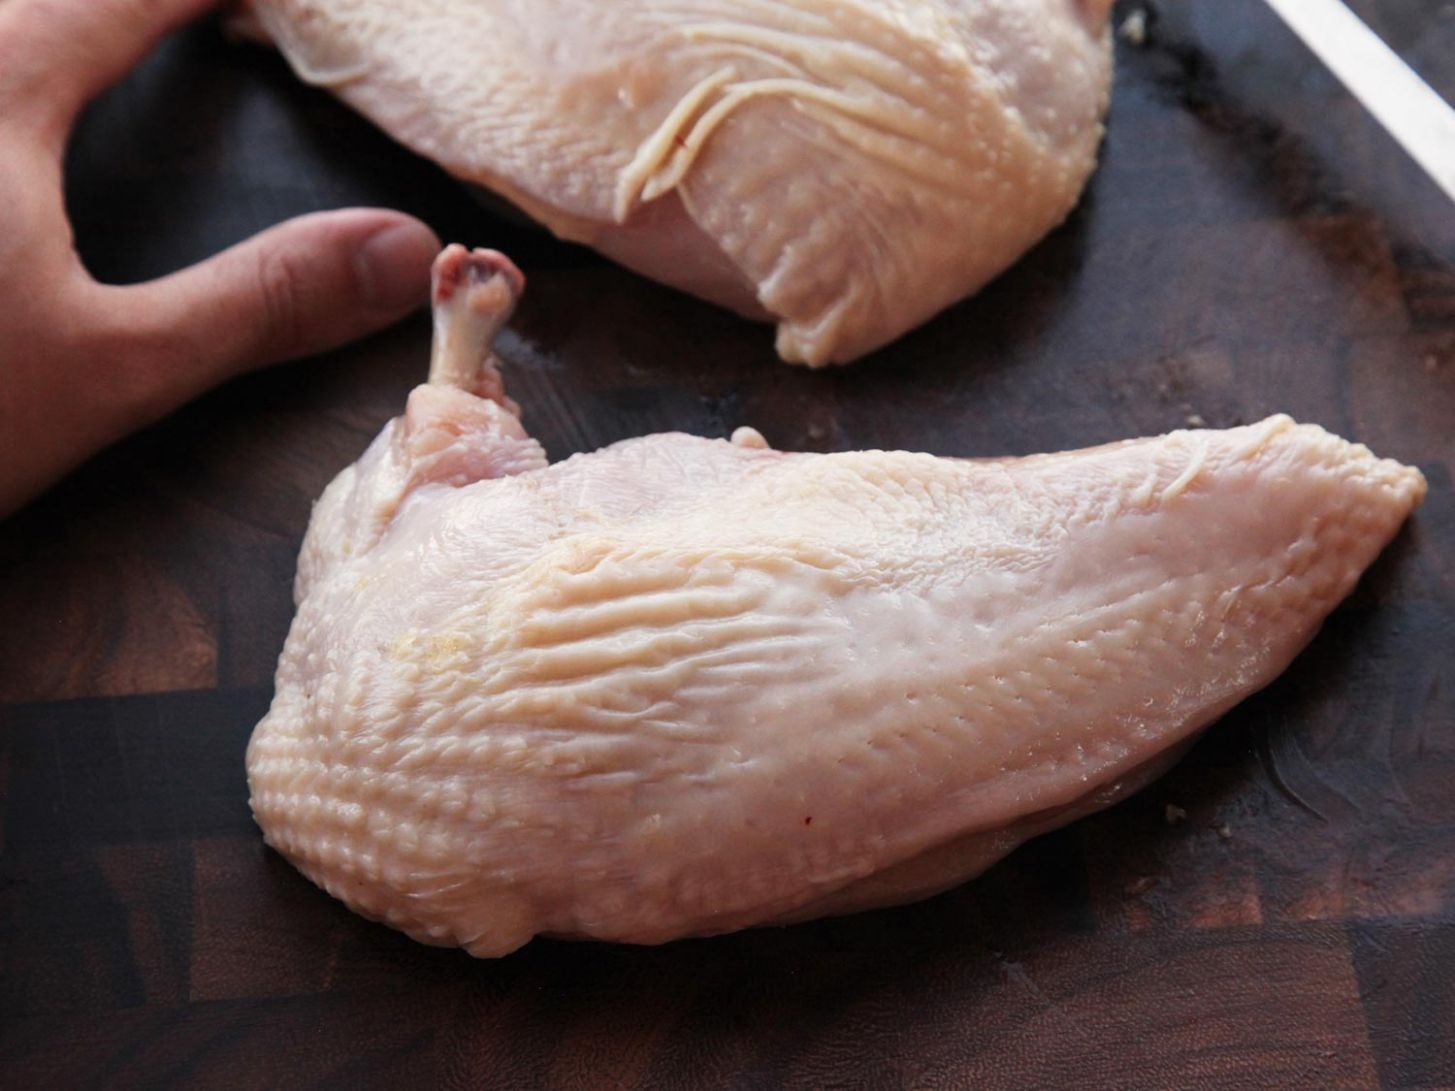 How to Cut an Airline Chicken Breast | Knife Skills | Serious Eats - Recipes Chicken Breast With Ribs Attached